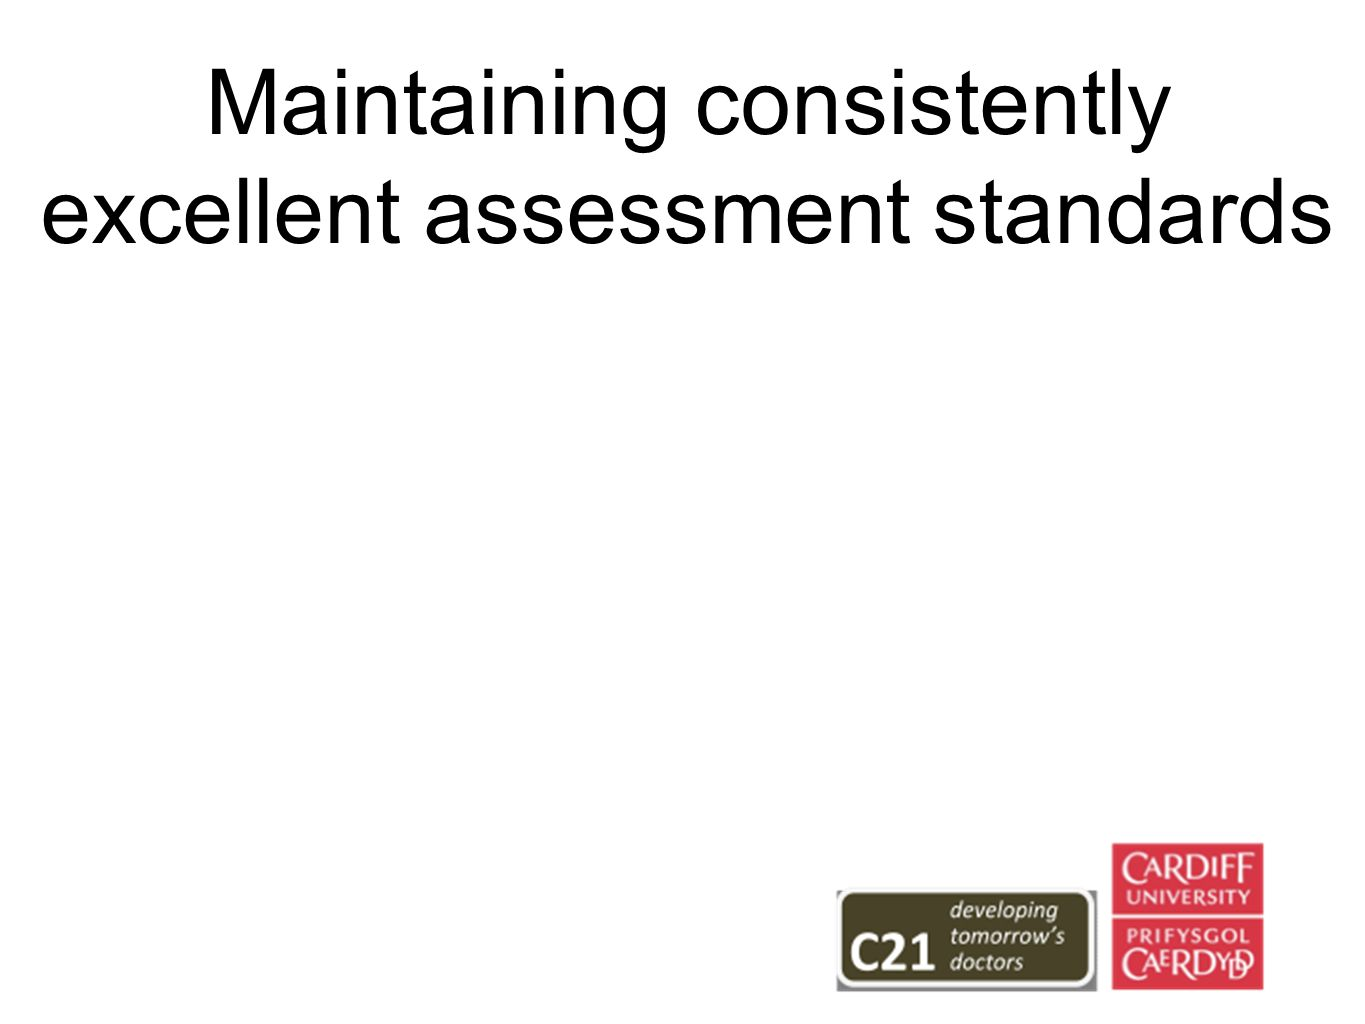 Maintaining consistently excellent assessment standards